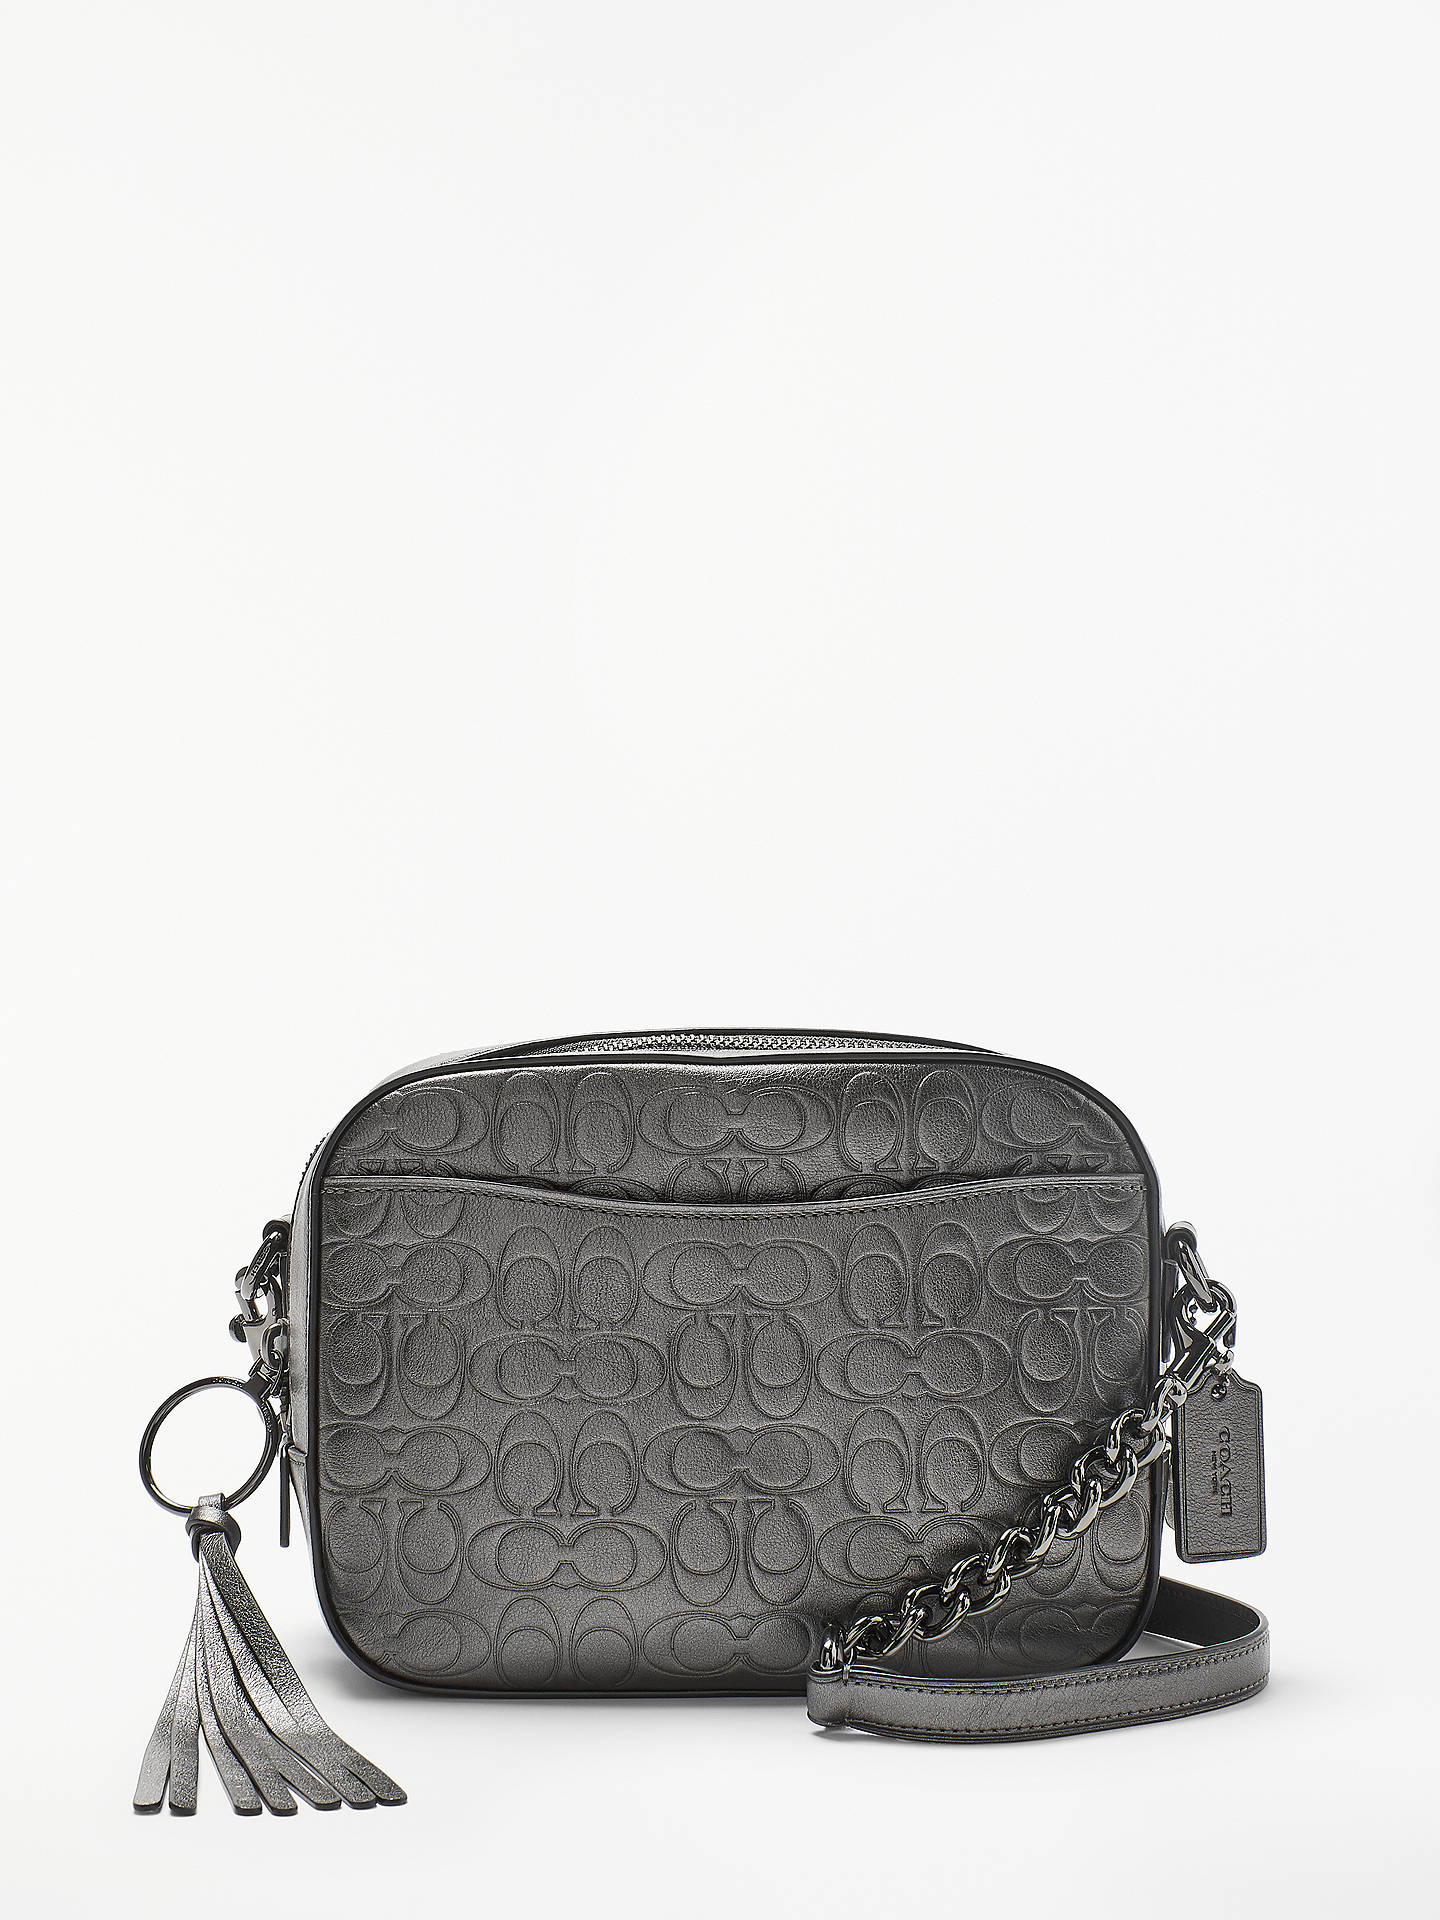 913fe41caab BuyCoach Metallic Signature Leather Camera Bag, Metallic Graphite Online at  johnlewis.com ...